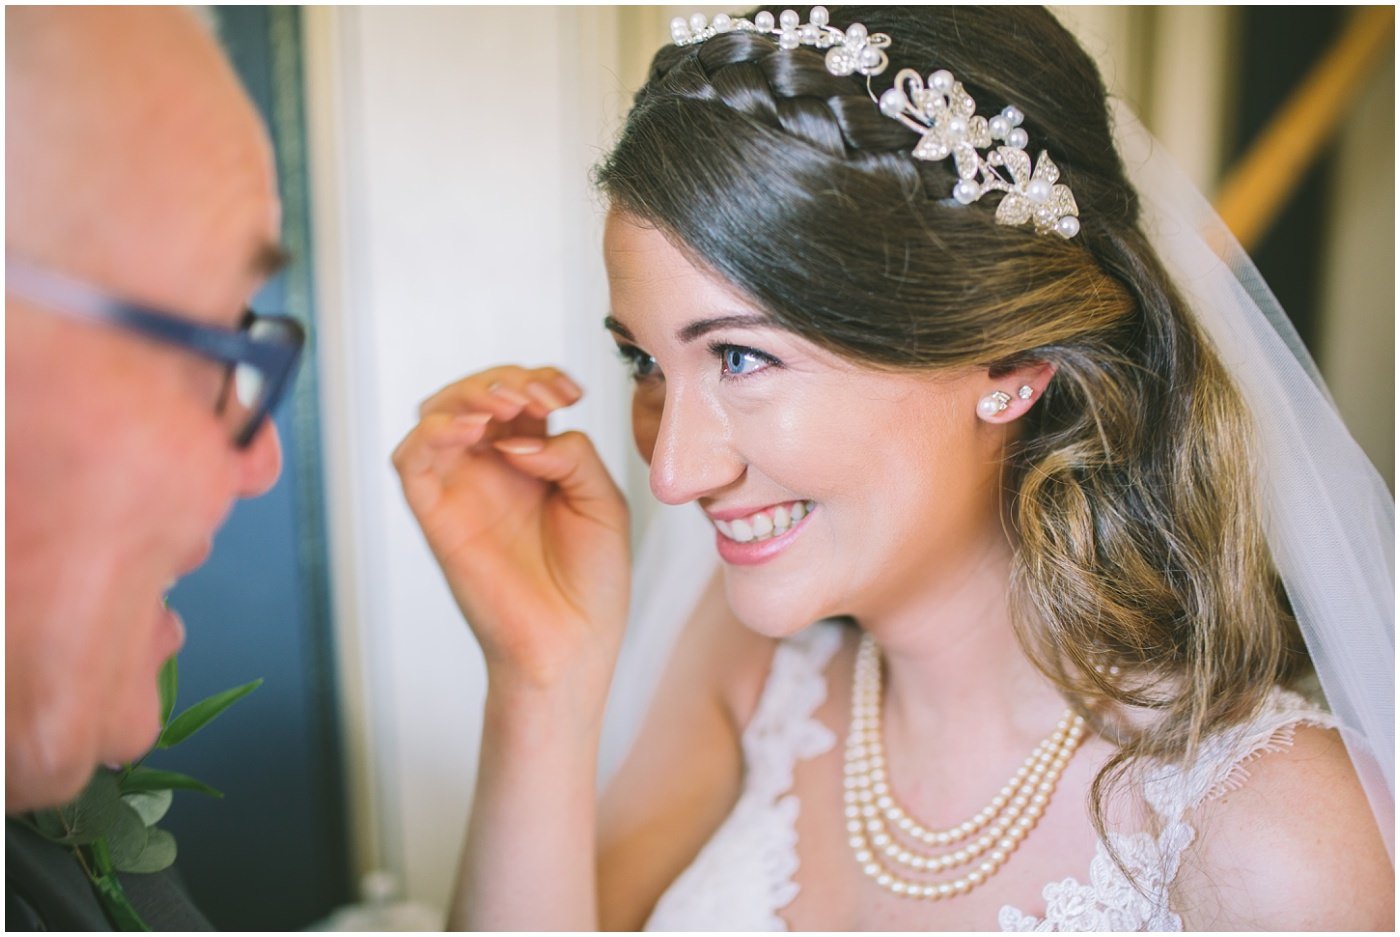 Tears from the bride as her dad sees her in her dress for the first time